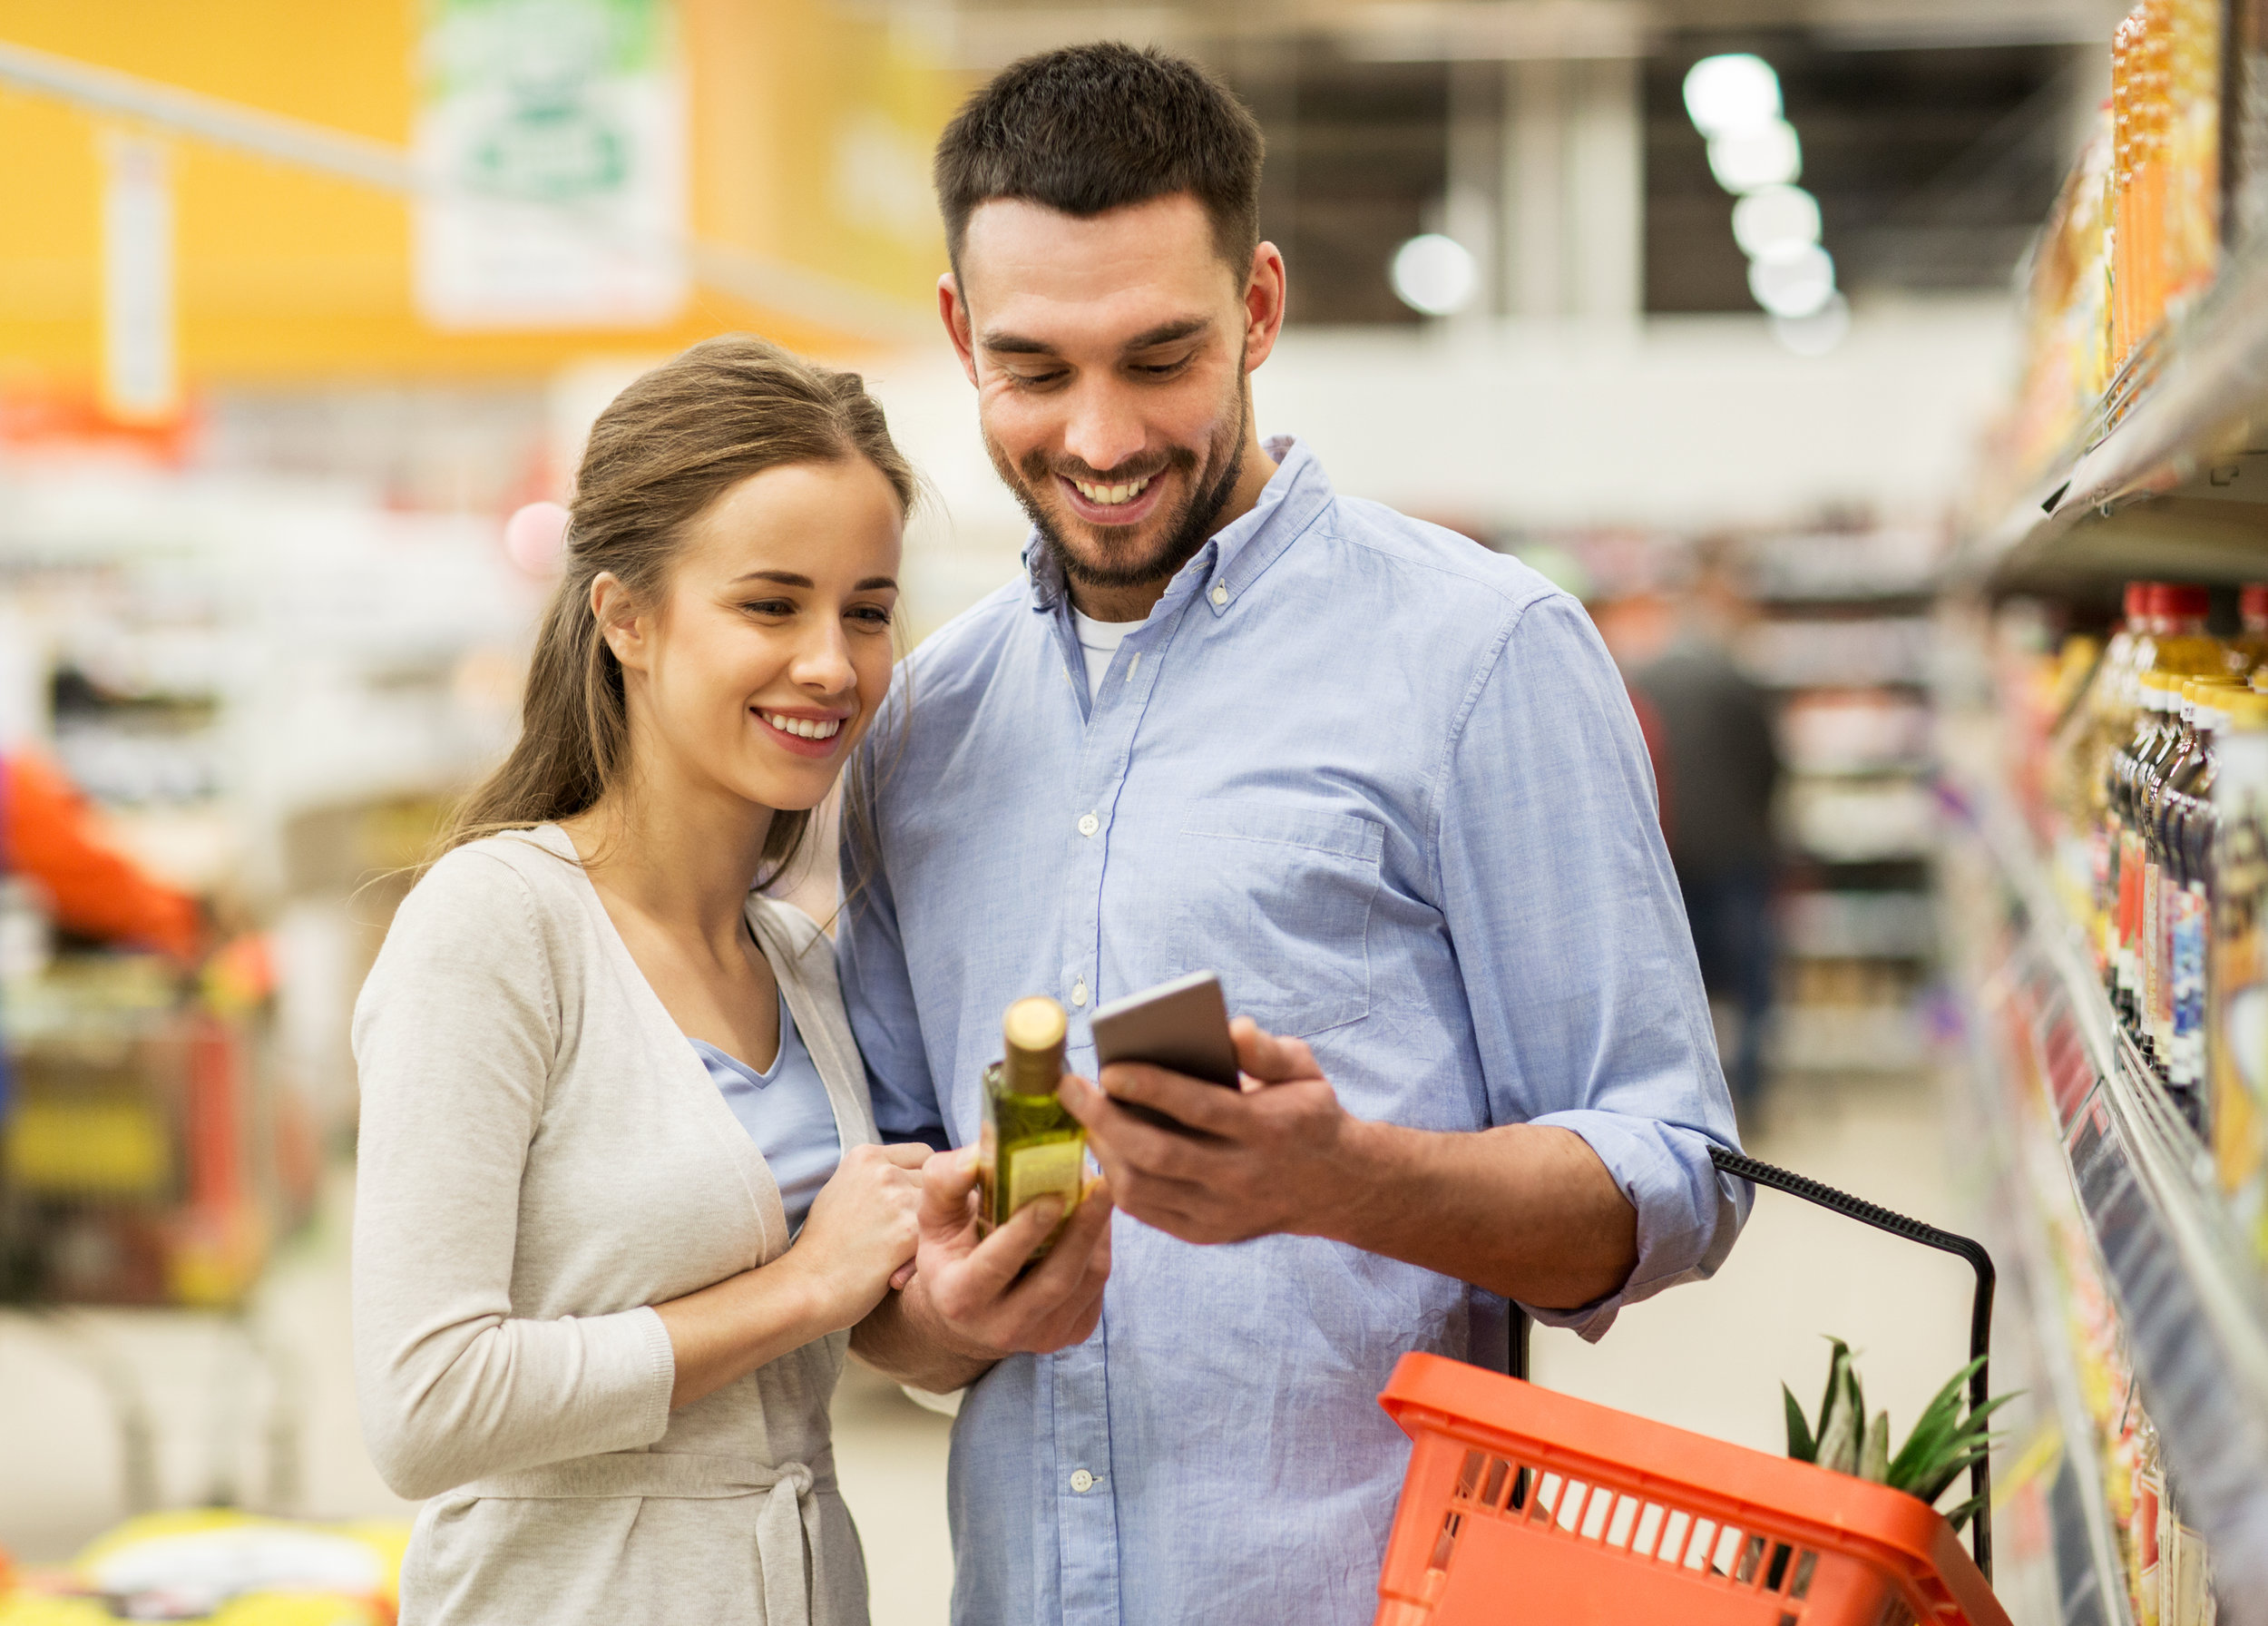 young couple in grocery store.jpg